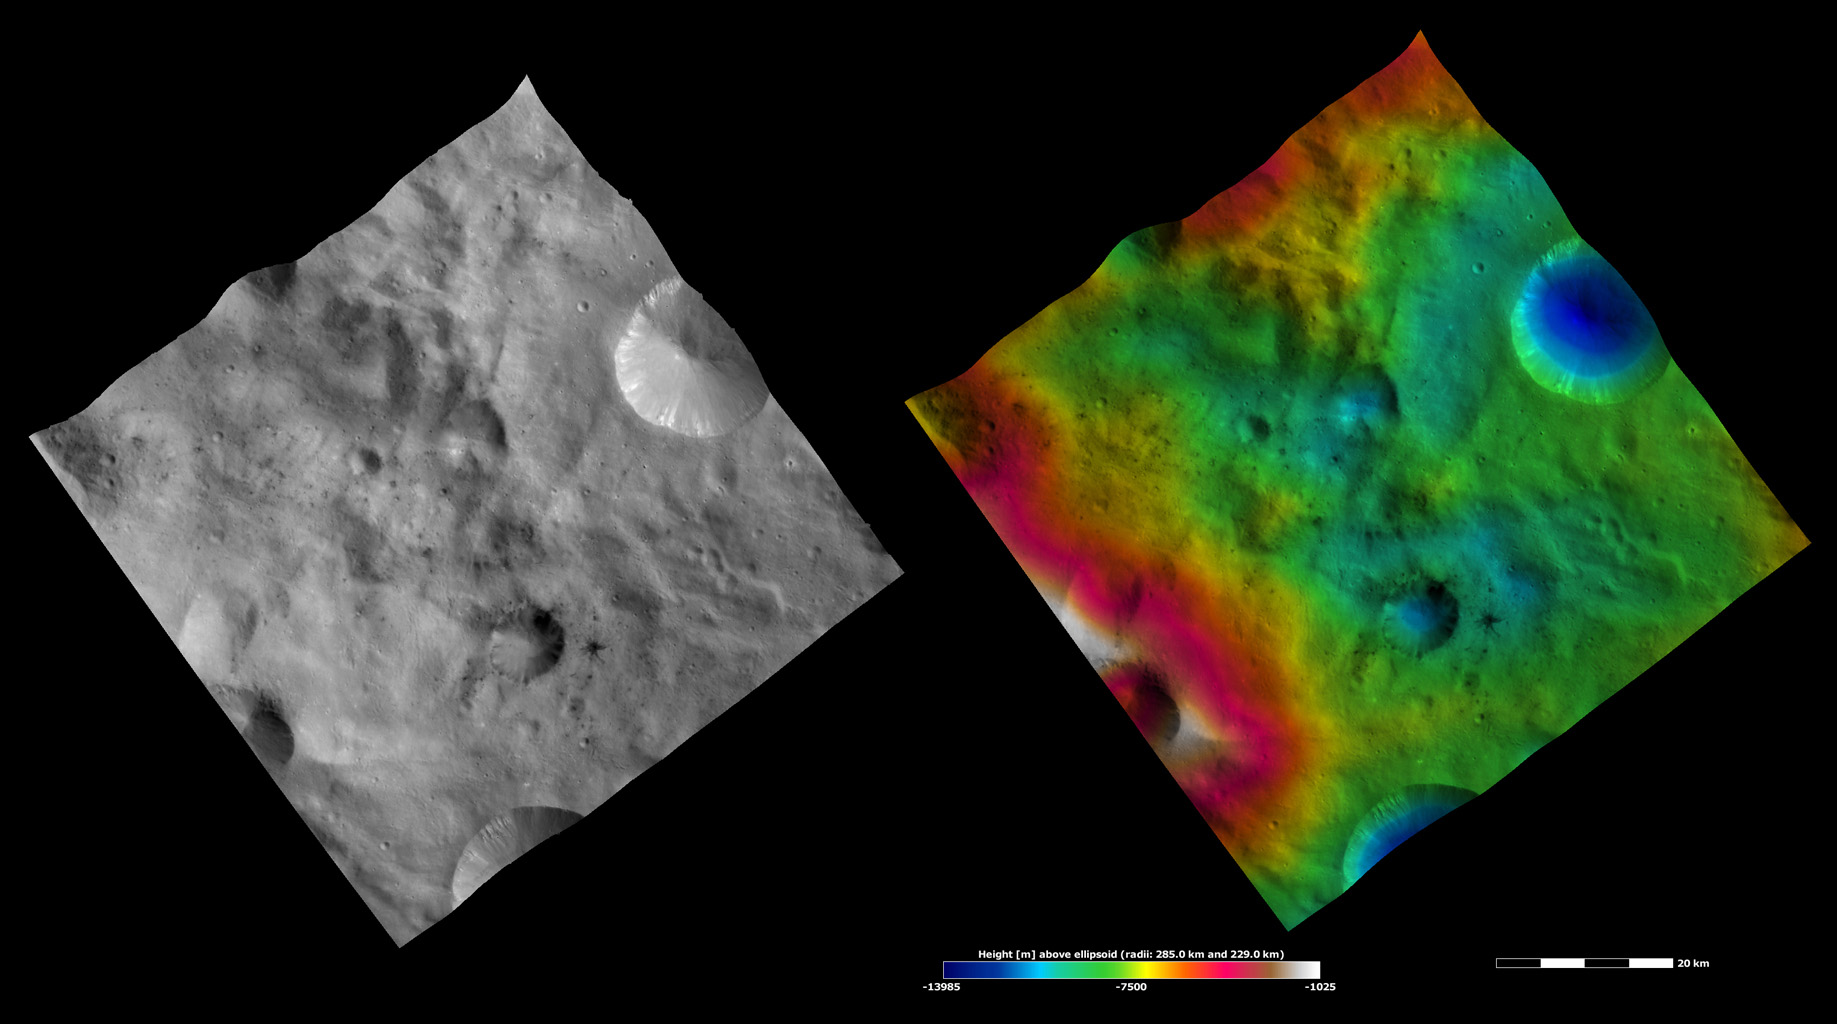 Apparent Brightness and Topography Images of Laelia Crater